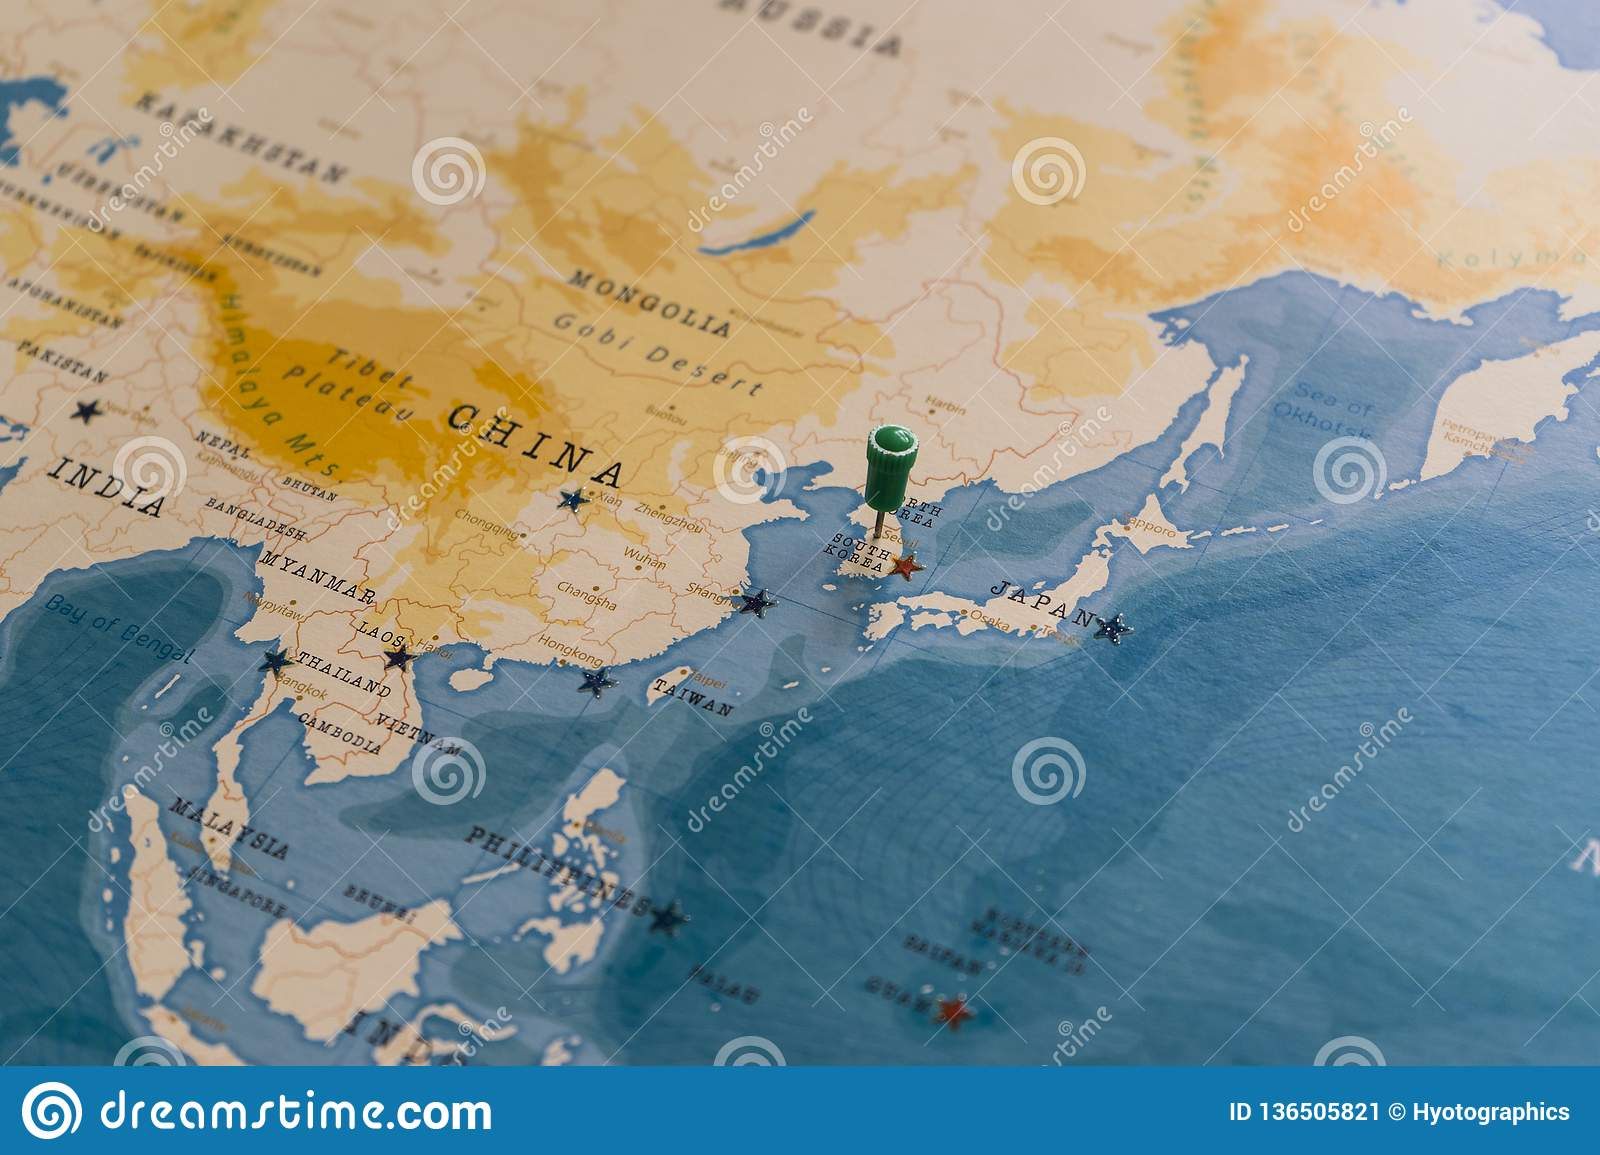 A Pin On Seoul, South Korea In The World Map Stock Image - Image of Korea Bay World Map on mongolian plateau map, yellow sea map, florida bay map, indonesia map, taklamakan desert map, gulf of tonkin map, luzon strait map, pacific ocean map, mu us desert map, tatar strait map, qinghai lake map, bo hai map, goryeo map, korea water park, monaco bay map, mexico bay map, korean empire map, grand canal map, south bay map, mekong river map,